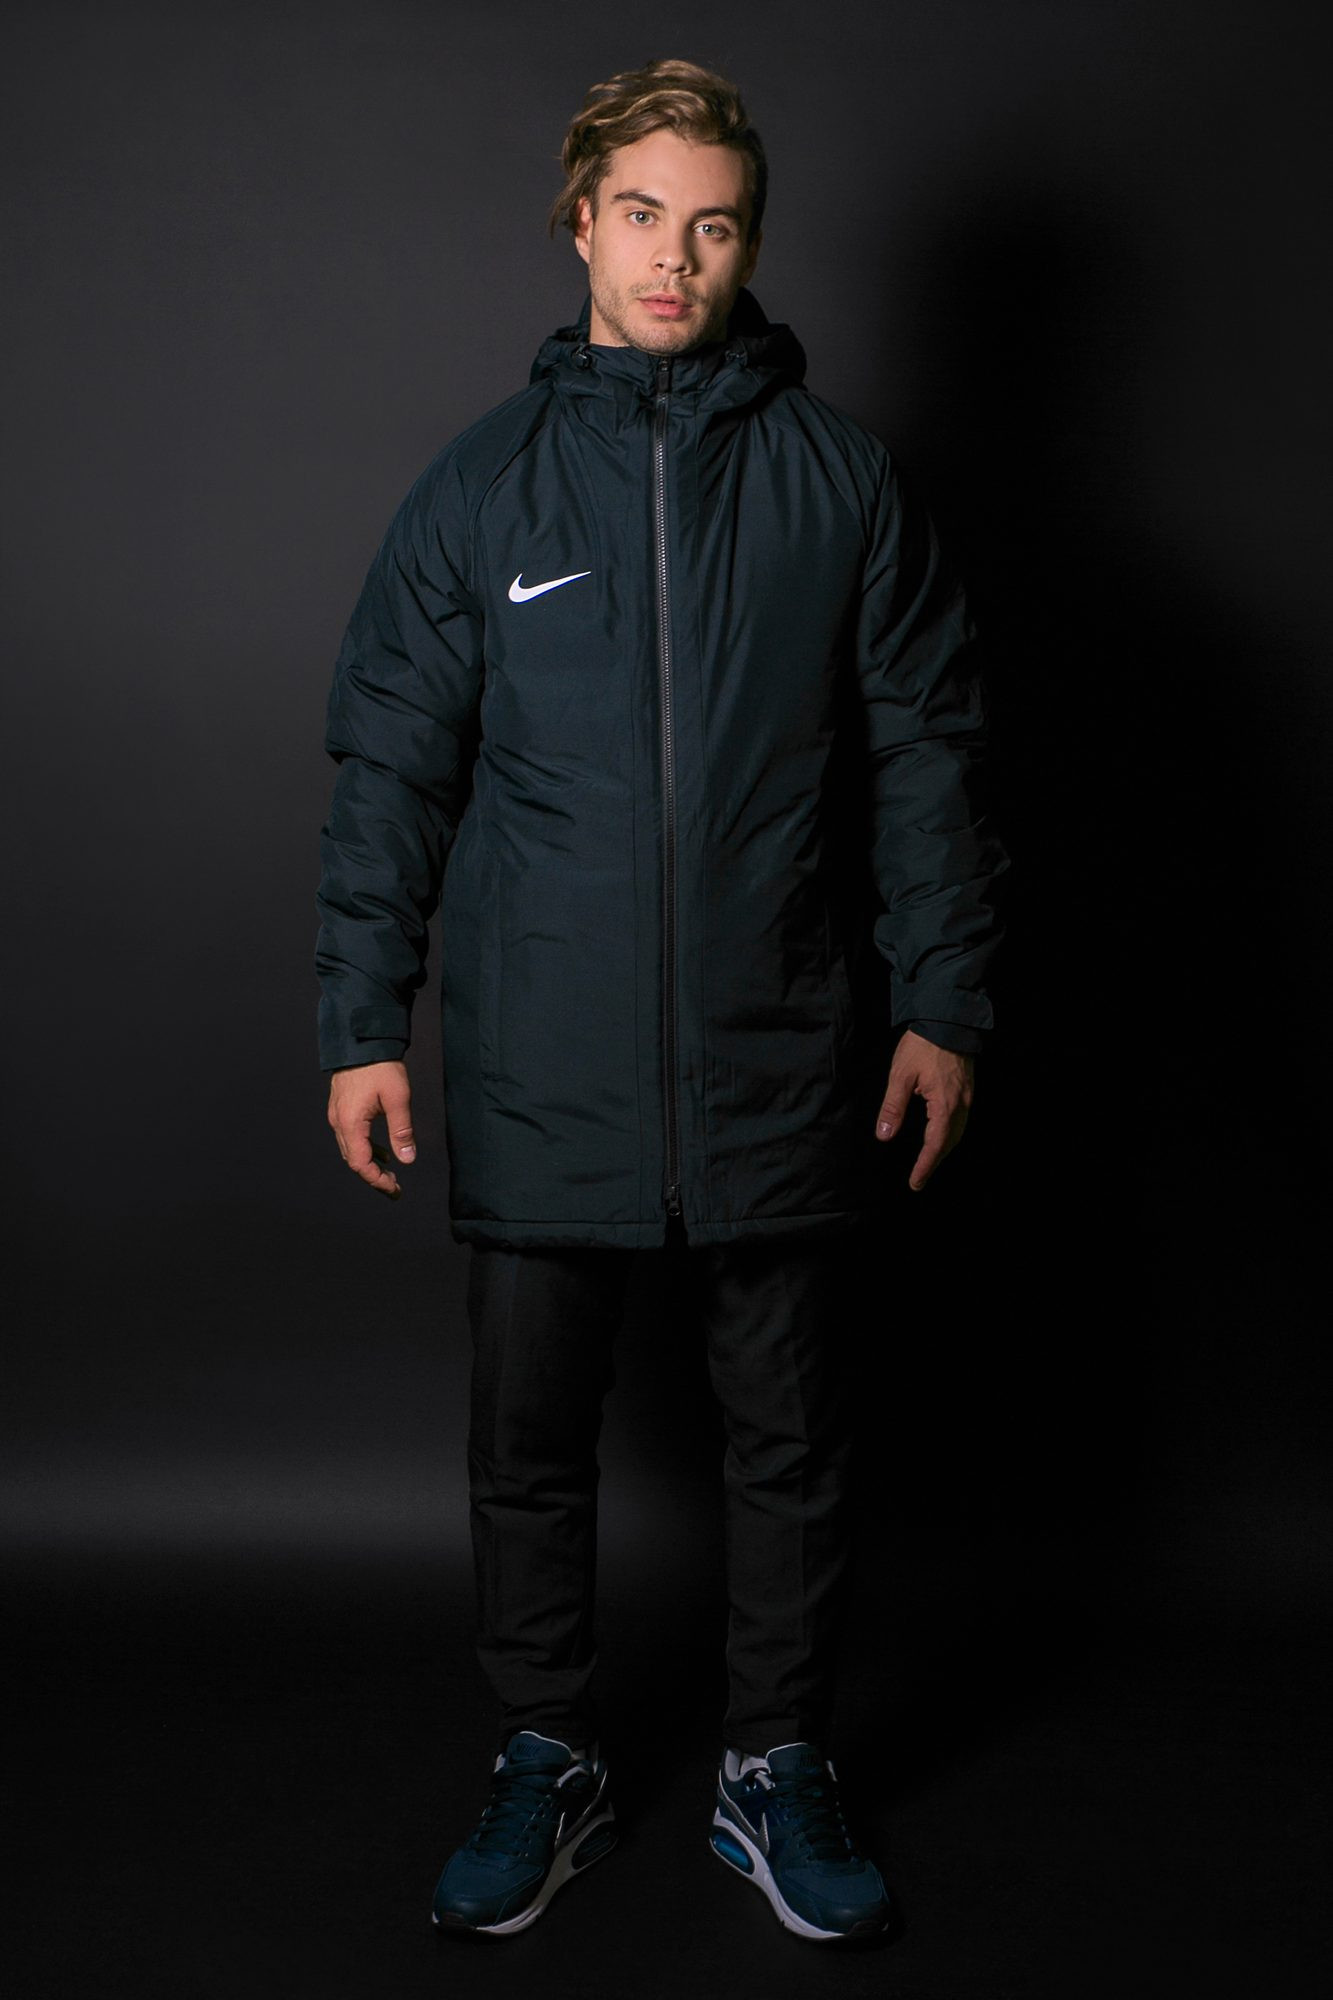 Куртка Men's Nike Dry Academy18 Football Jacket